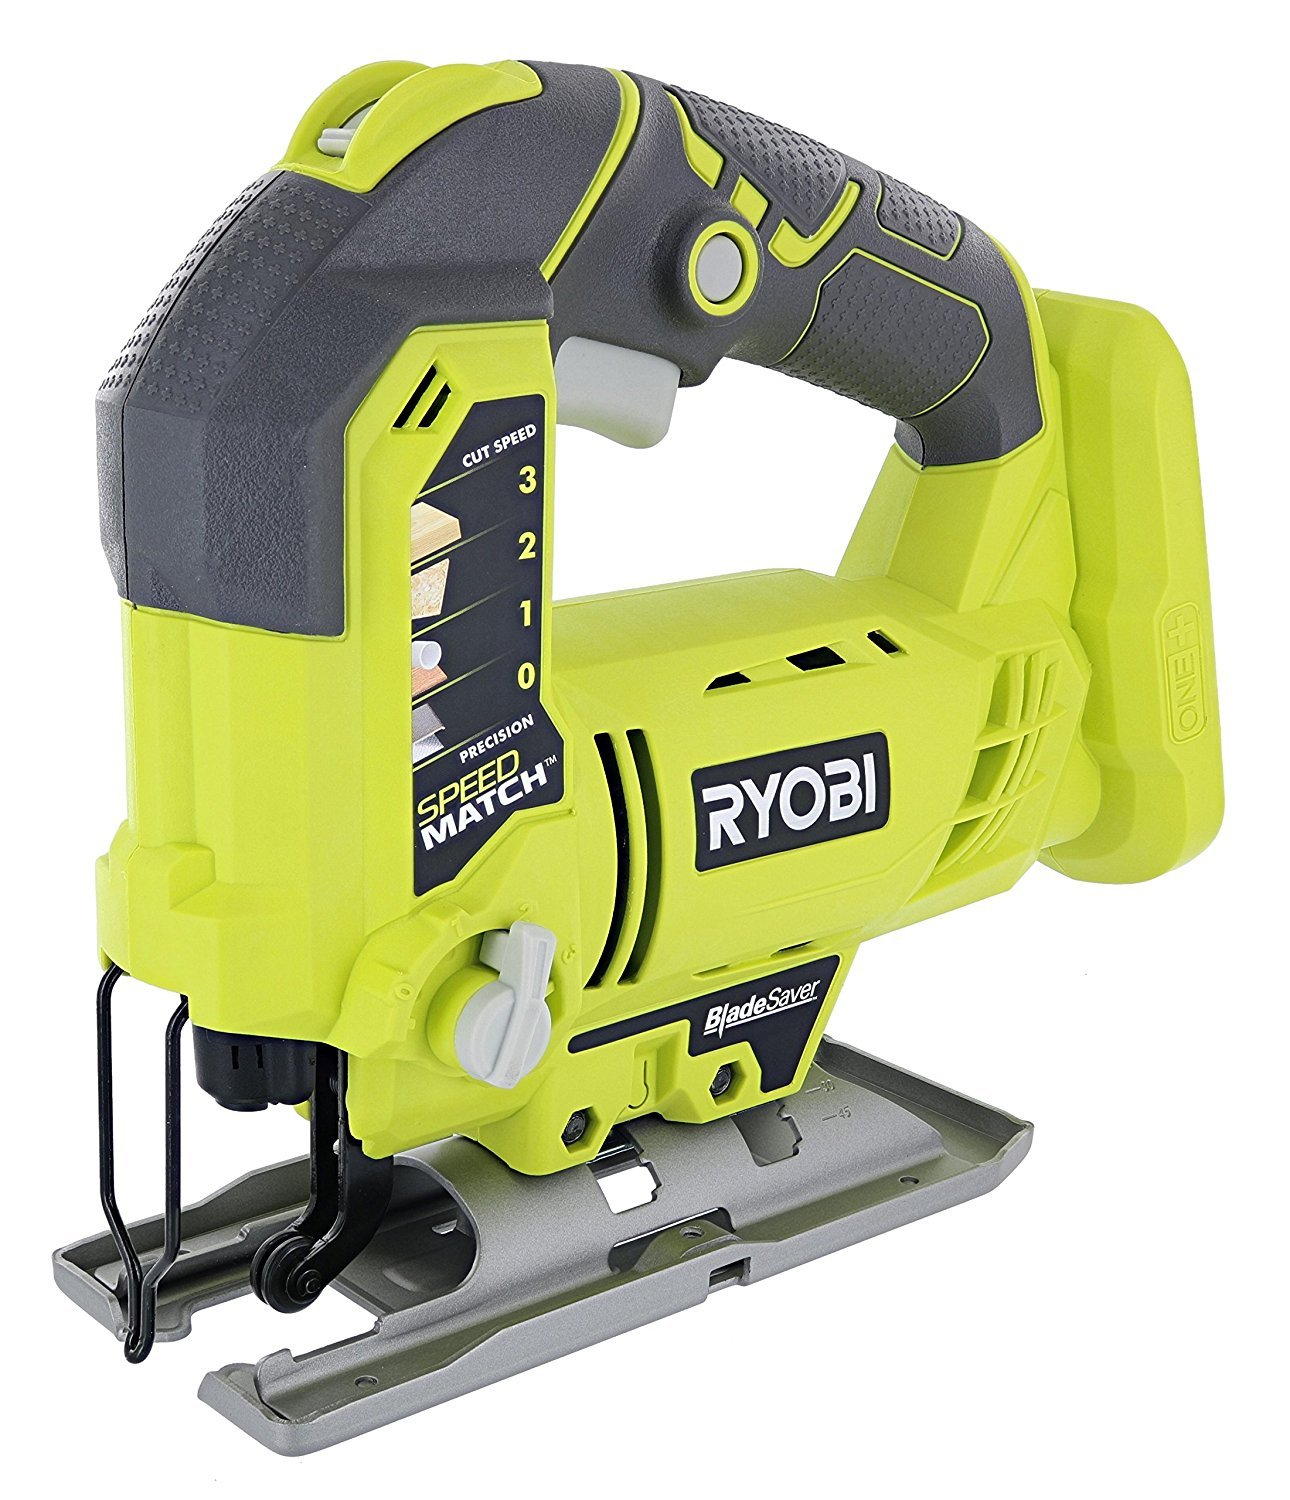 Ryobi One P523 18V Lithium Ion Cordless Orbital T Shank 3,000 SPM Jigsaw Battery Not Included, Power Tool and T Shank Wood Cutting Blade Only